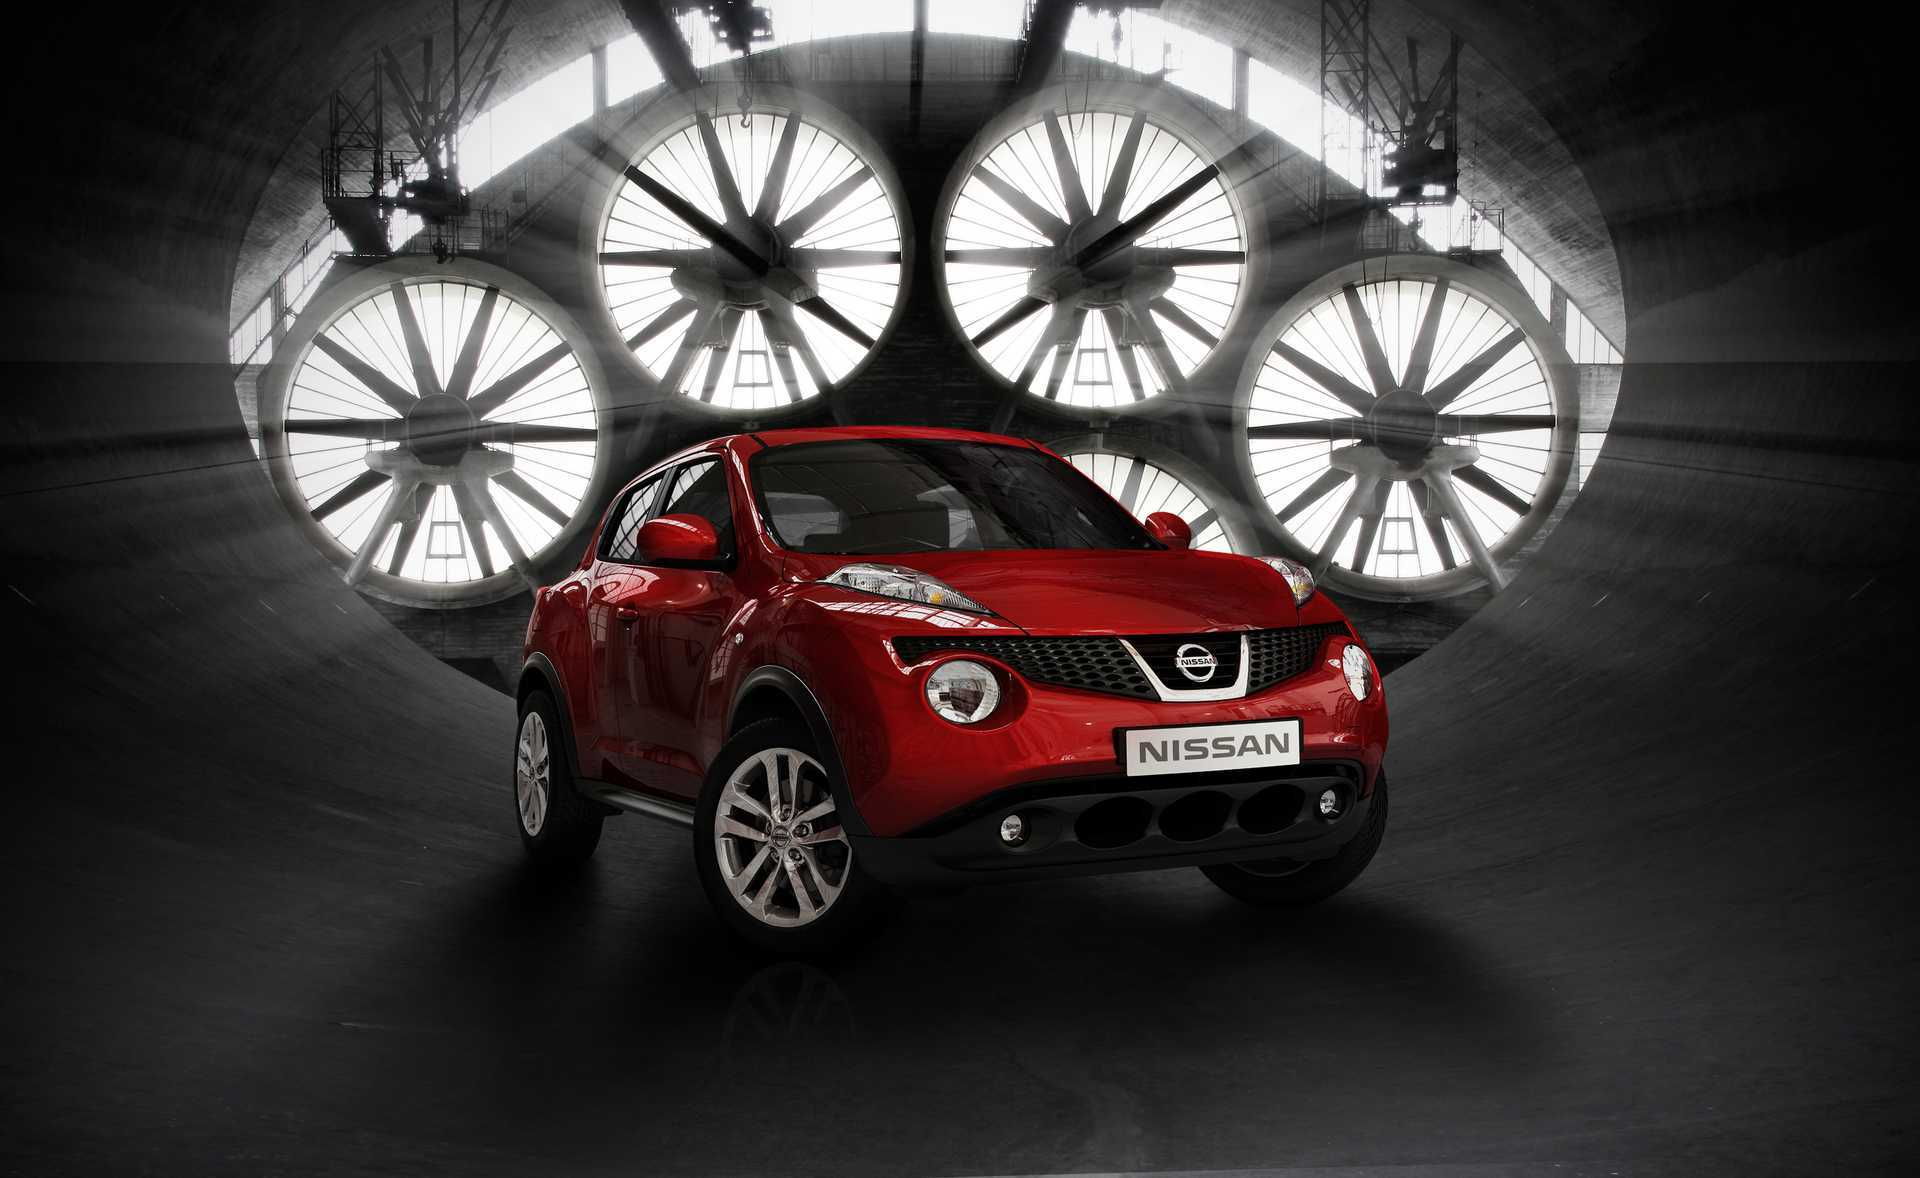 Image: Car, red, Nissan, Juke, wind tunnel, fans